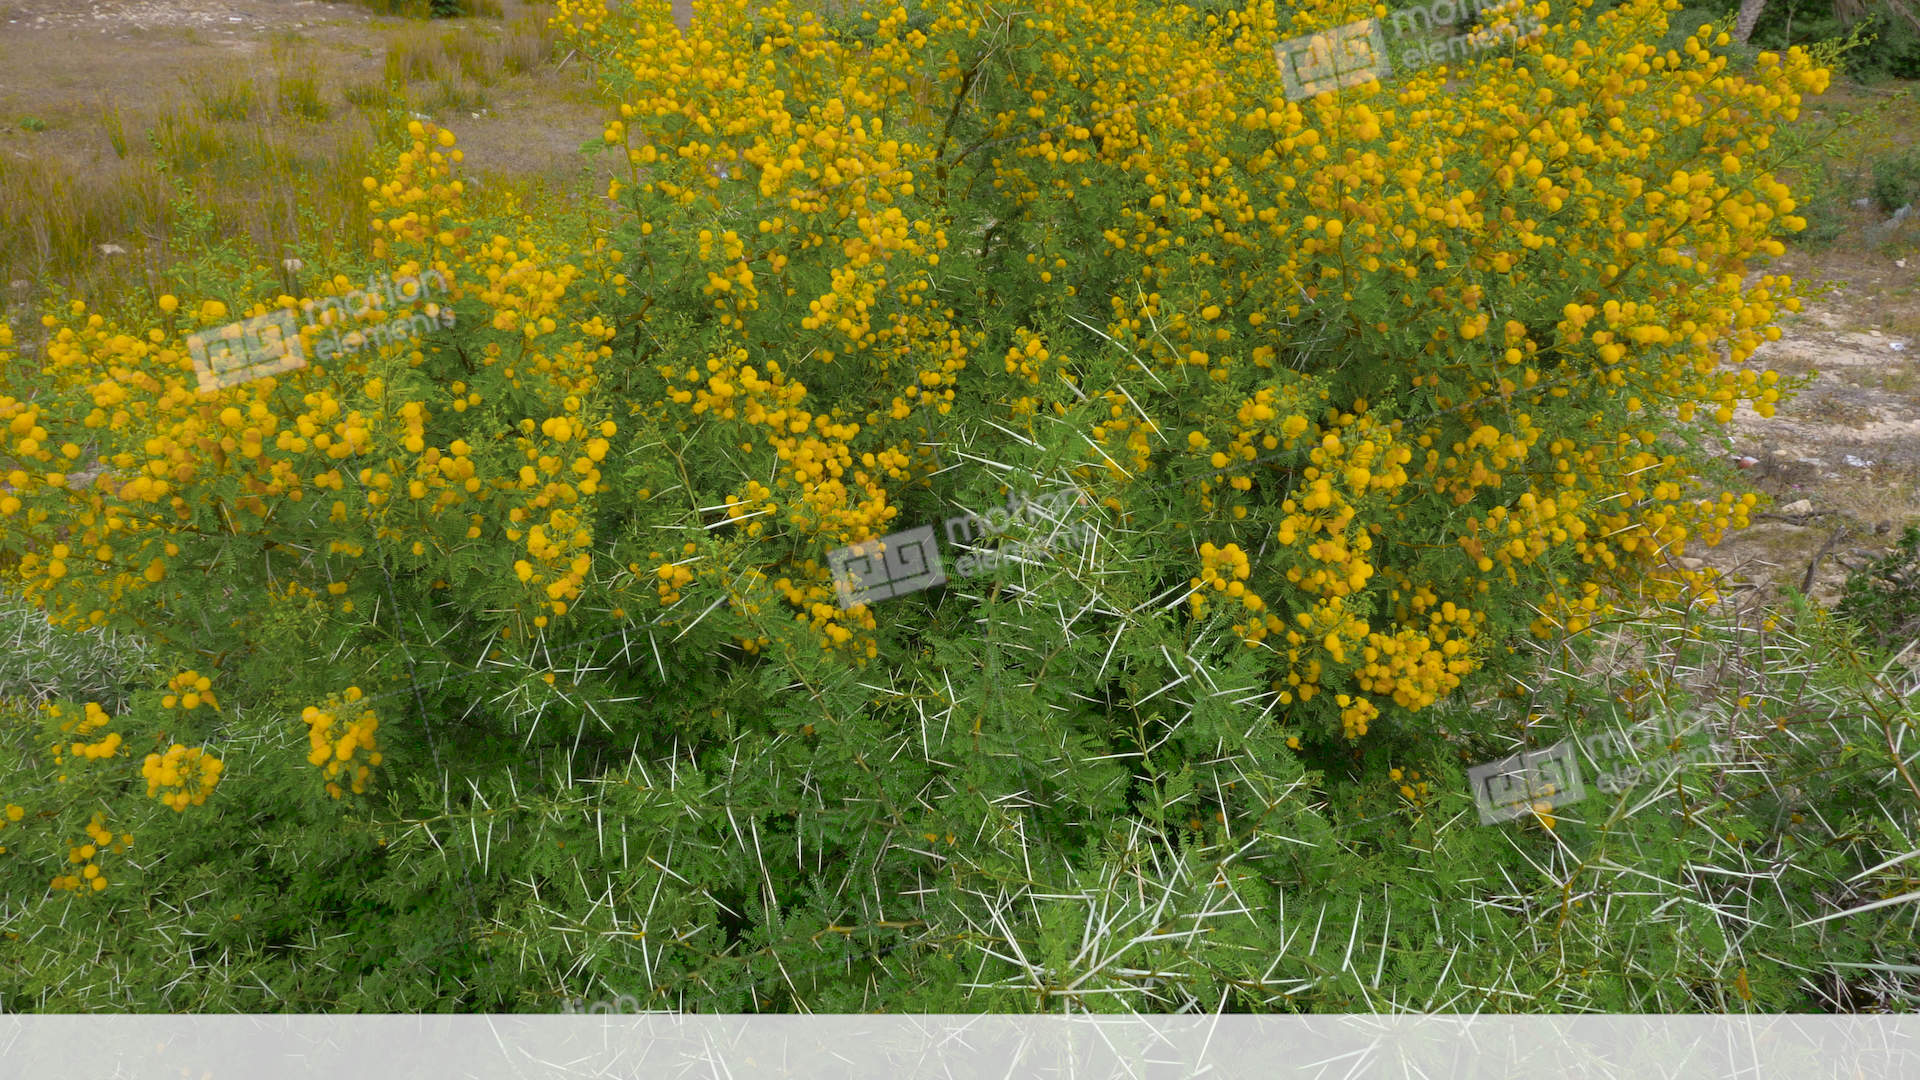 Yellow Flowers On Flowering Acacia Vahellia Karroo Bush In Wild